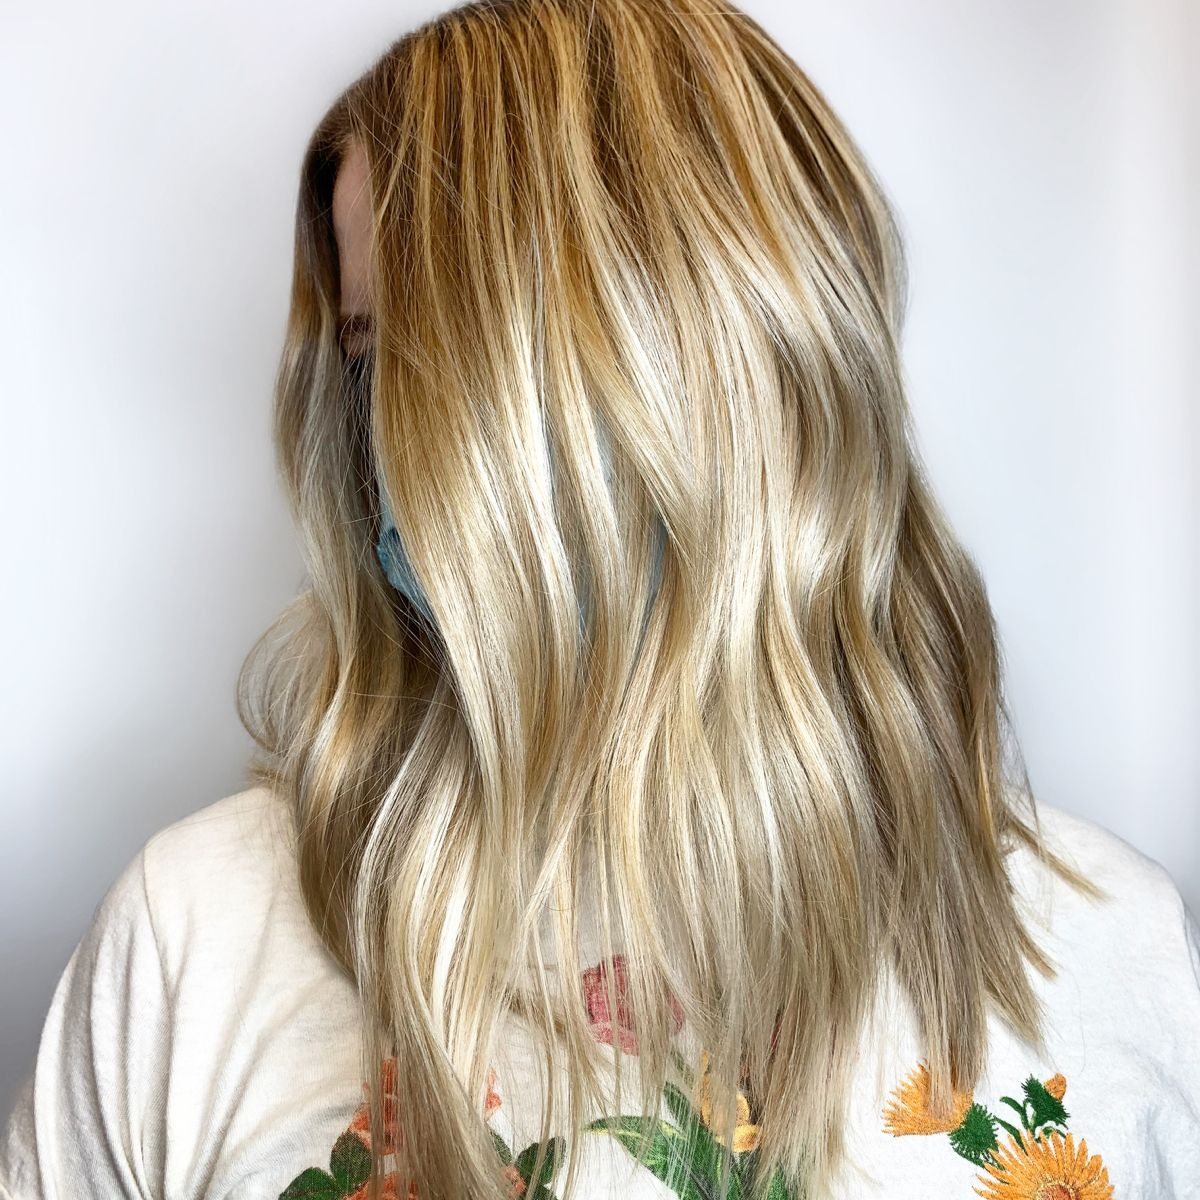 Just because it is getting cooler out doesnt mean you have to go darker! As your tan begins to fade it woild be so nice to have a sunkissed balayage to fit your complexion. #blondebalayage #balayagehairblonde #balayagehair #livedincolor #blondehairstyles #providence #sunkissedhair